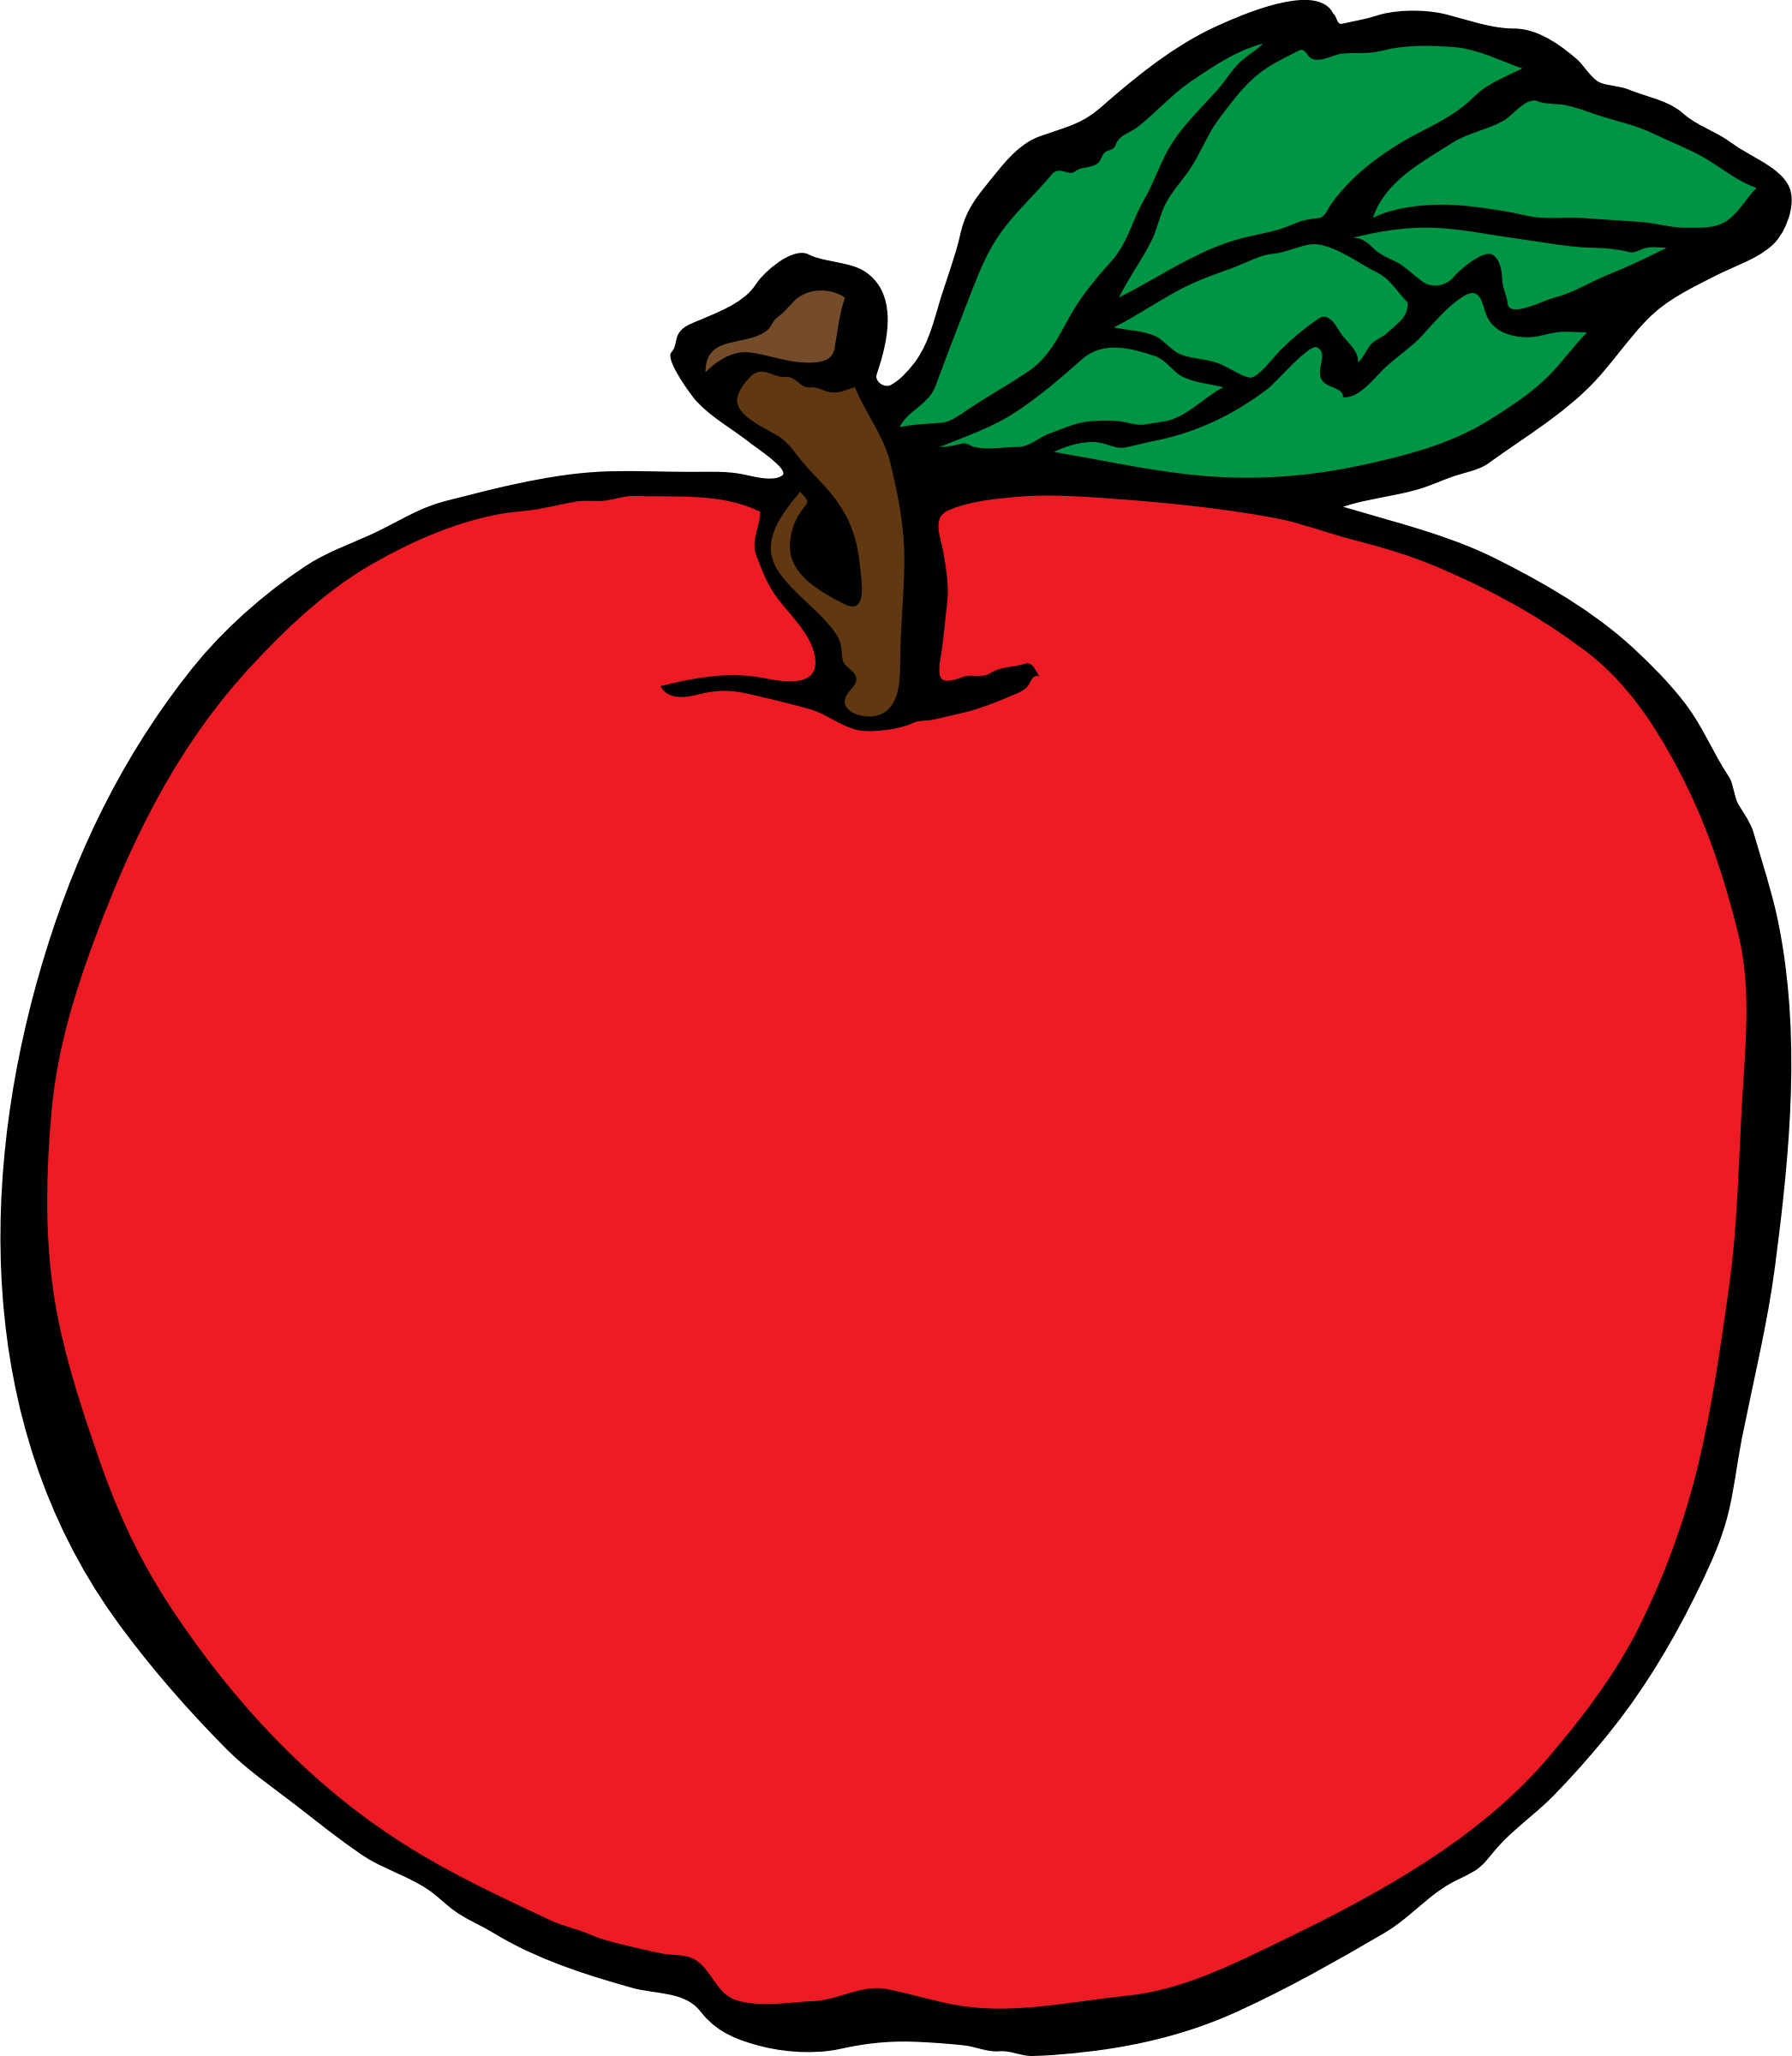 Apples clipart animated.  amazing apple for